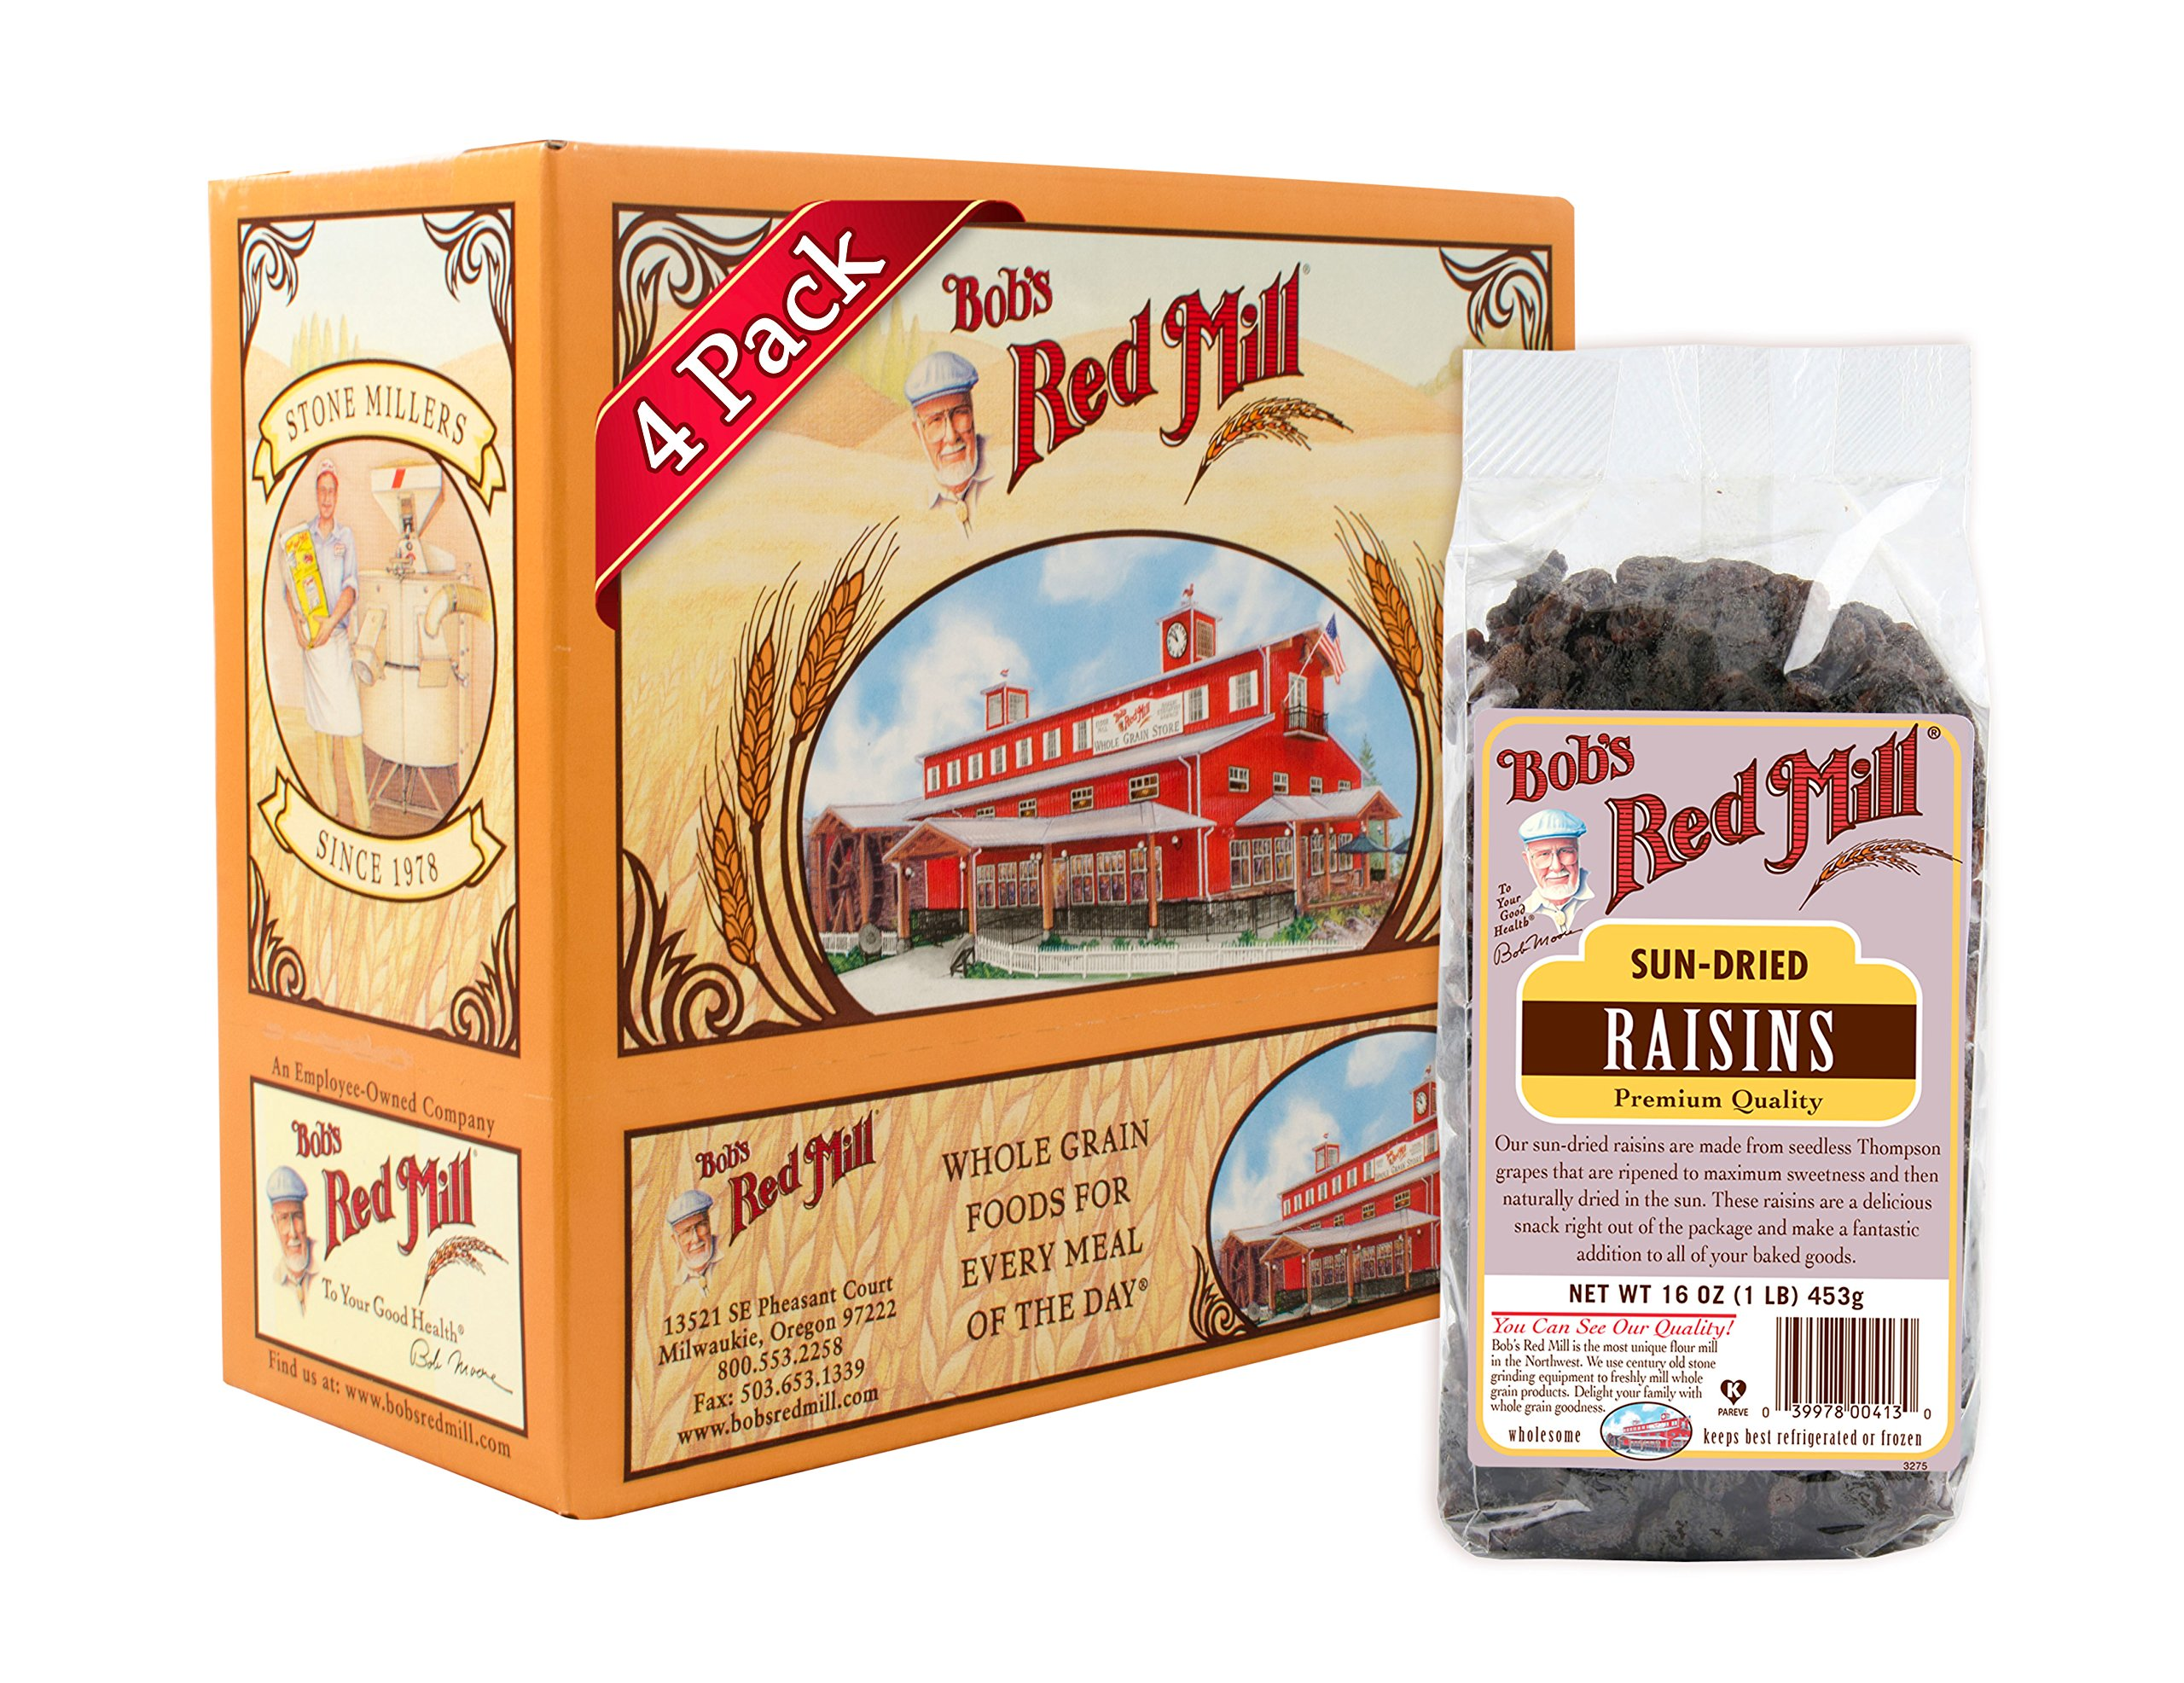 Bob's Red Mill Sun Dried Raisins Unsulphured, 16 Ounce (Pack of 4)